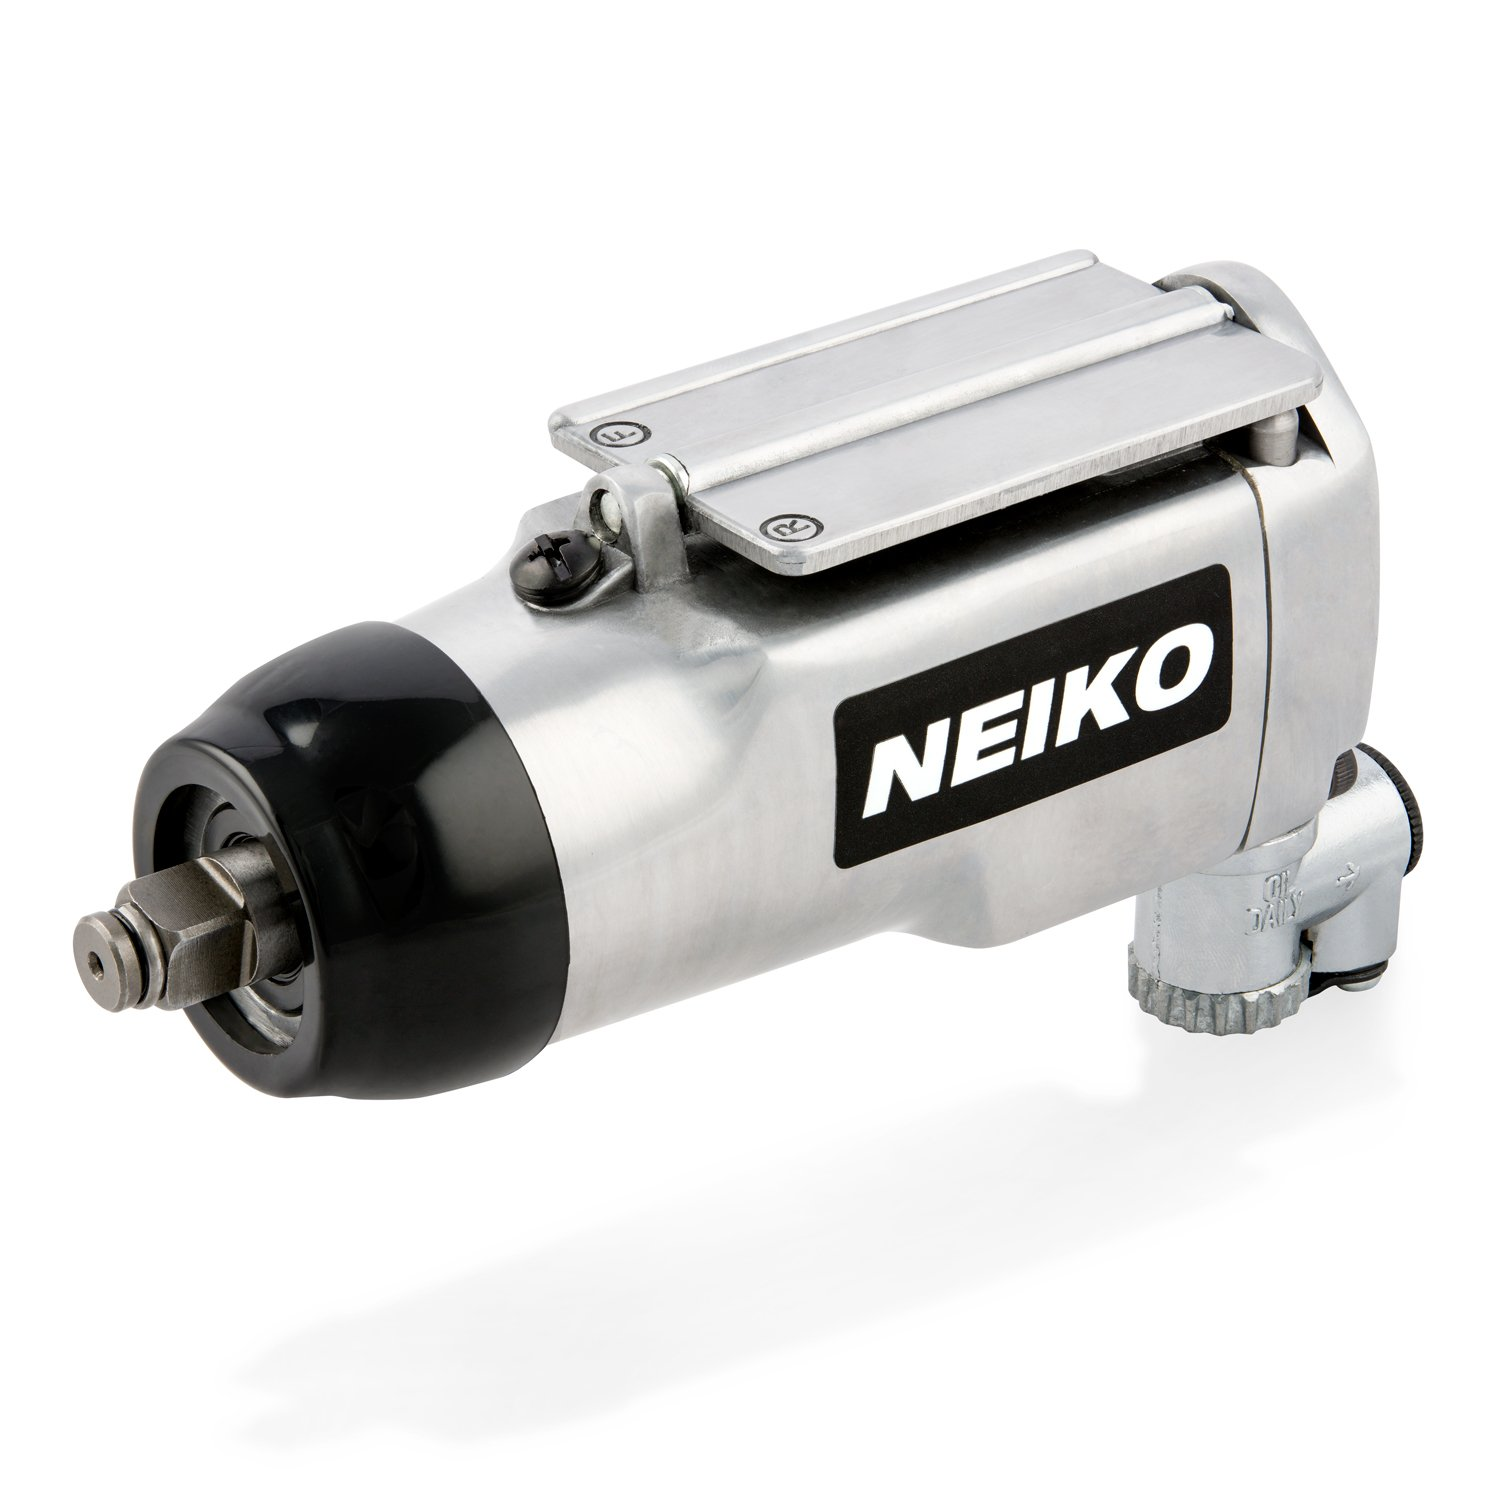 Neiko 30088A 3 8 Butterfly Impact Wrench, 75 Foot-Pound 1 4-Inch Air Inlet – 10,000 RPM